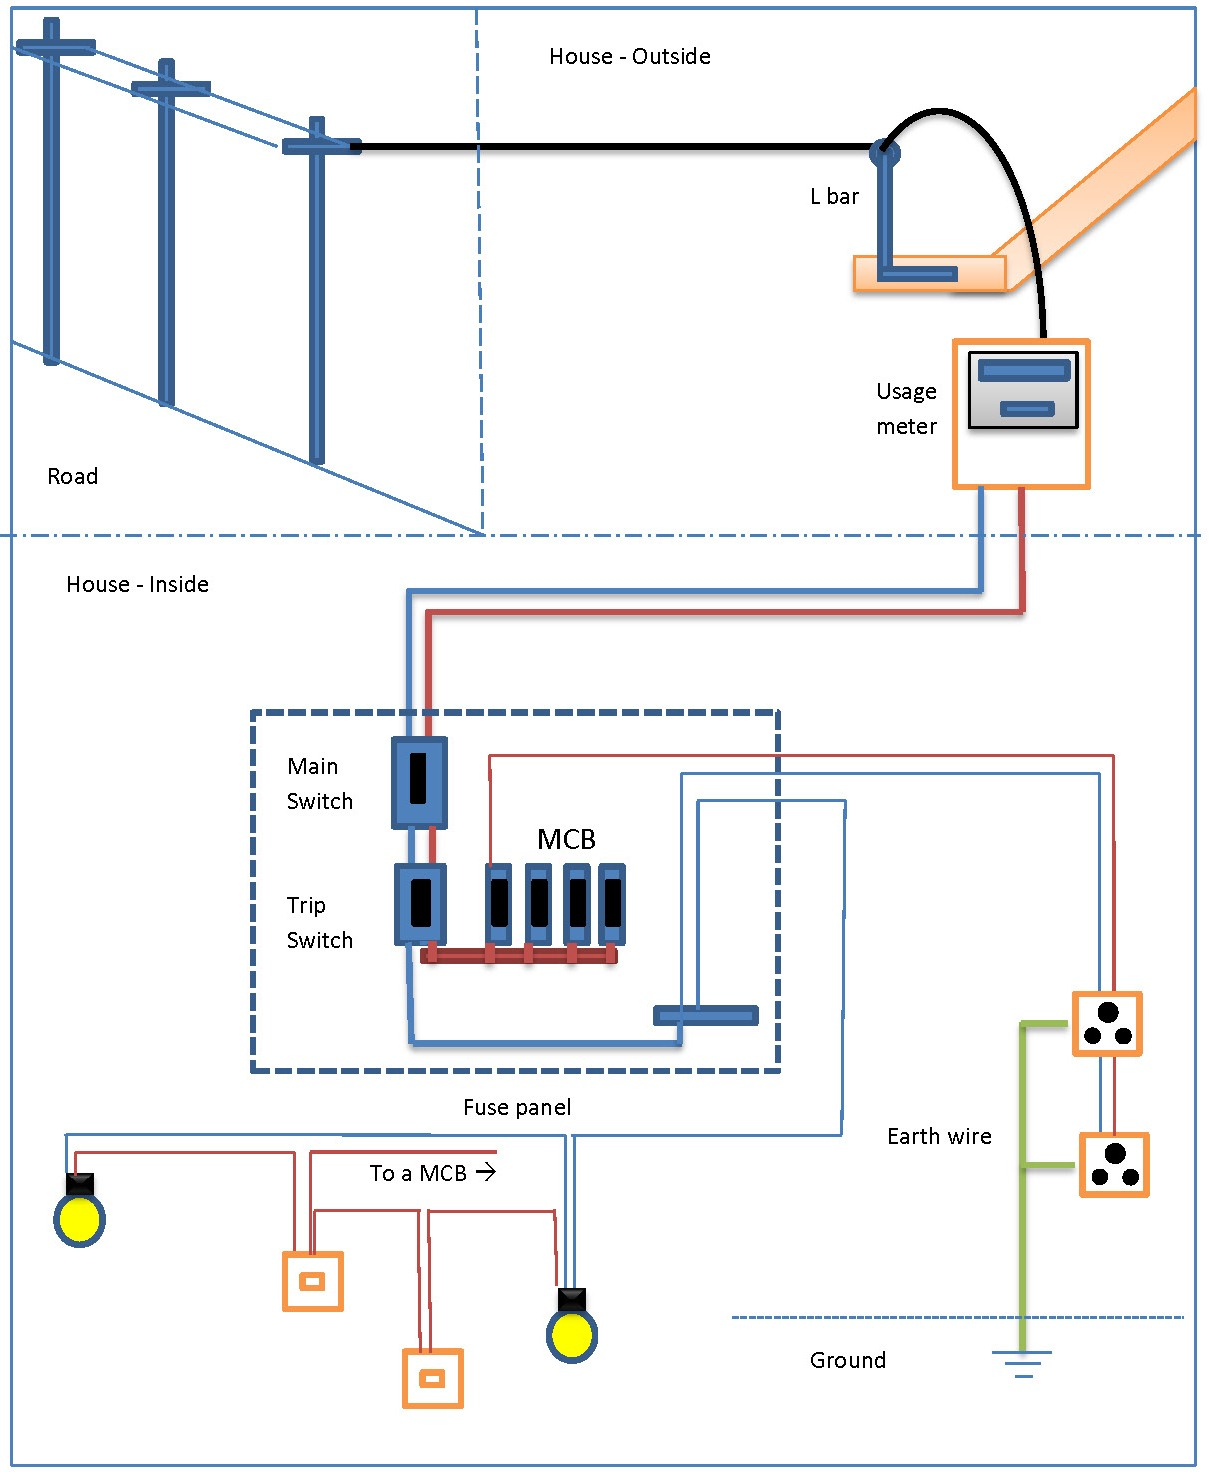 Doc3 senasum's blog house wiring diagram sri lanka electrical wiring diagram books at virtualis.co